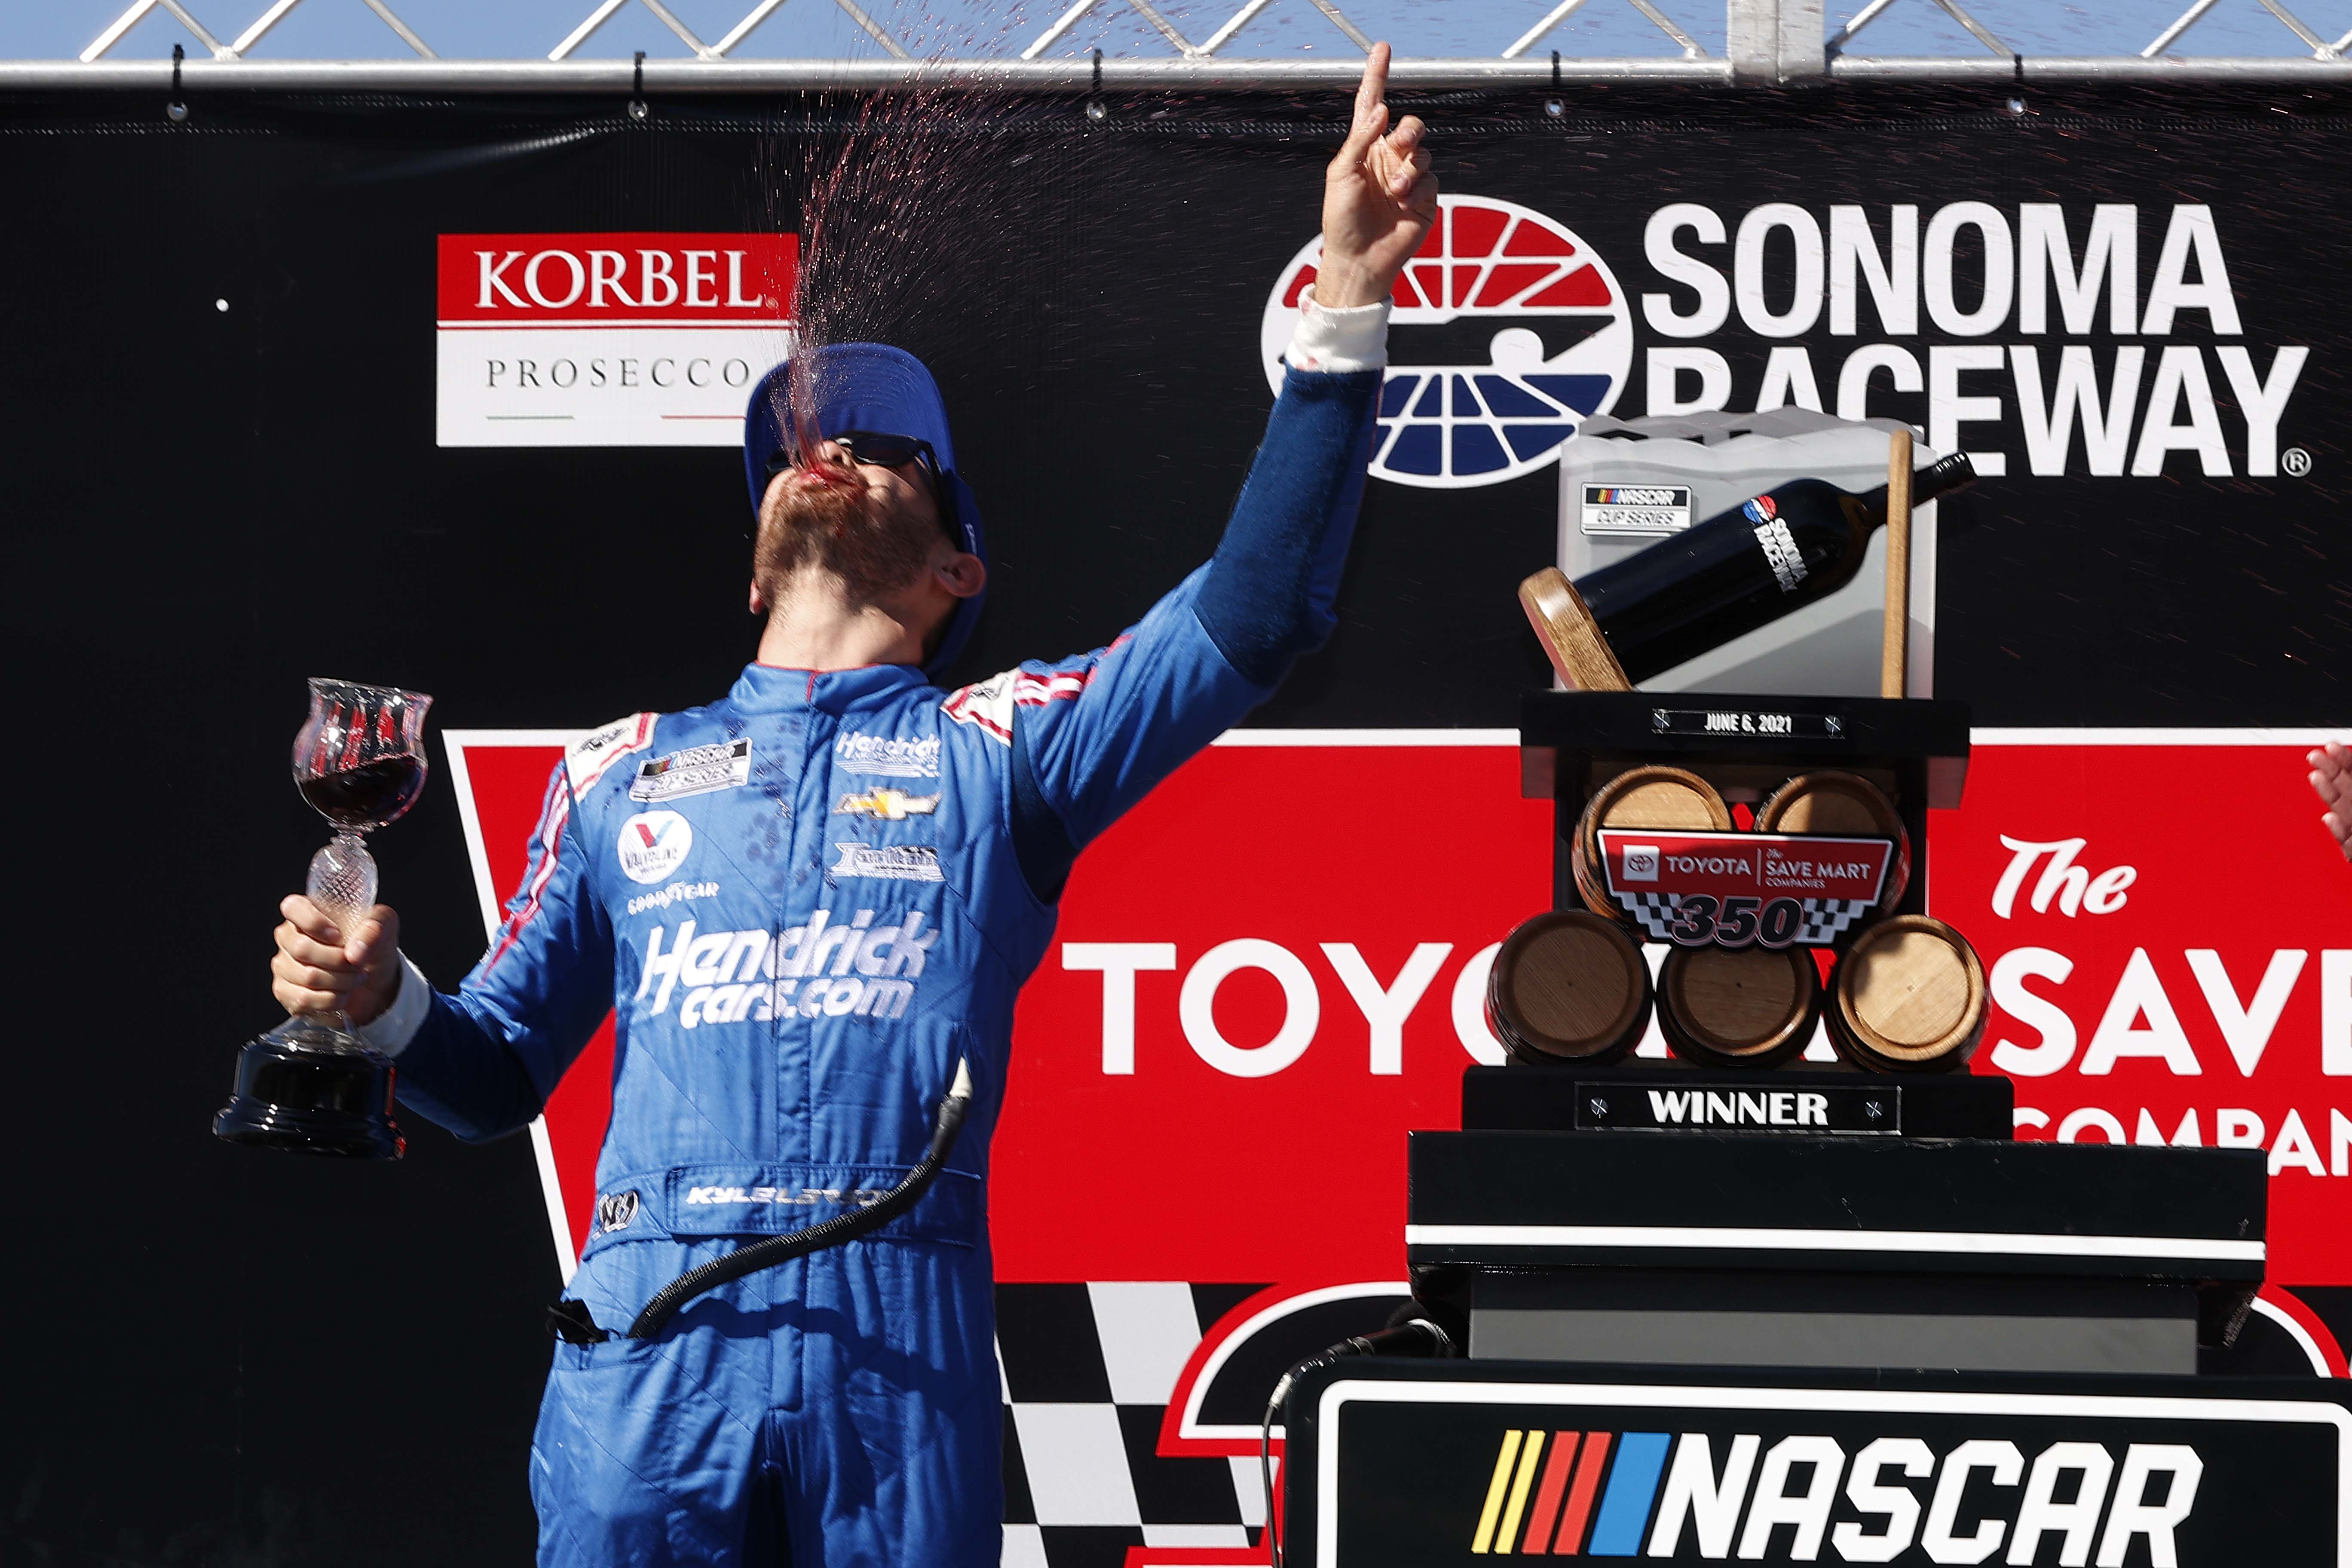 Kyle Larson spits wine in victory lane at Sonoma Raceway - NASCAR Cup Series